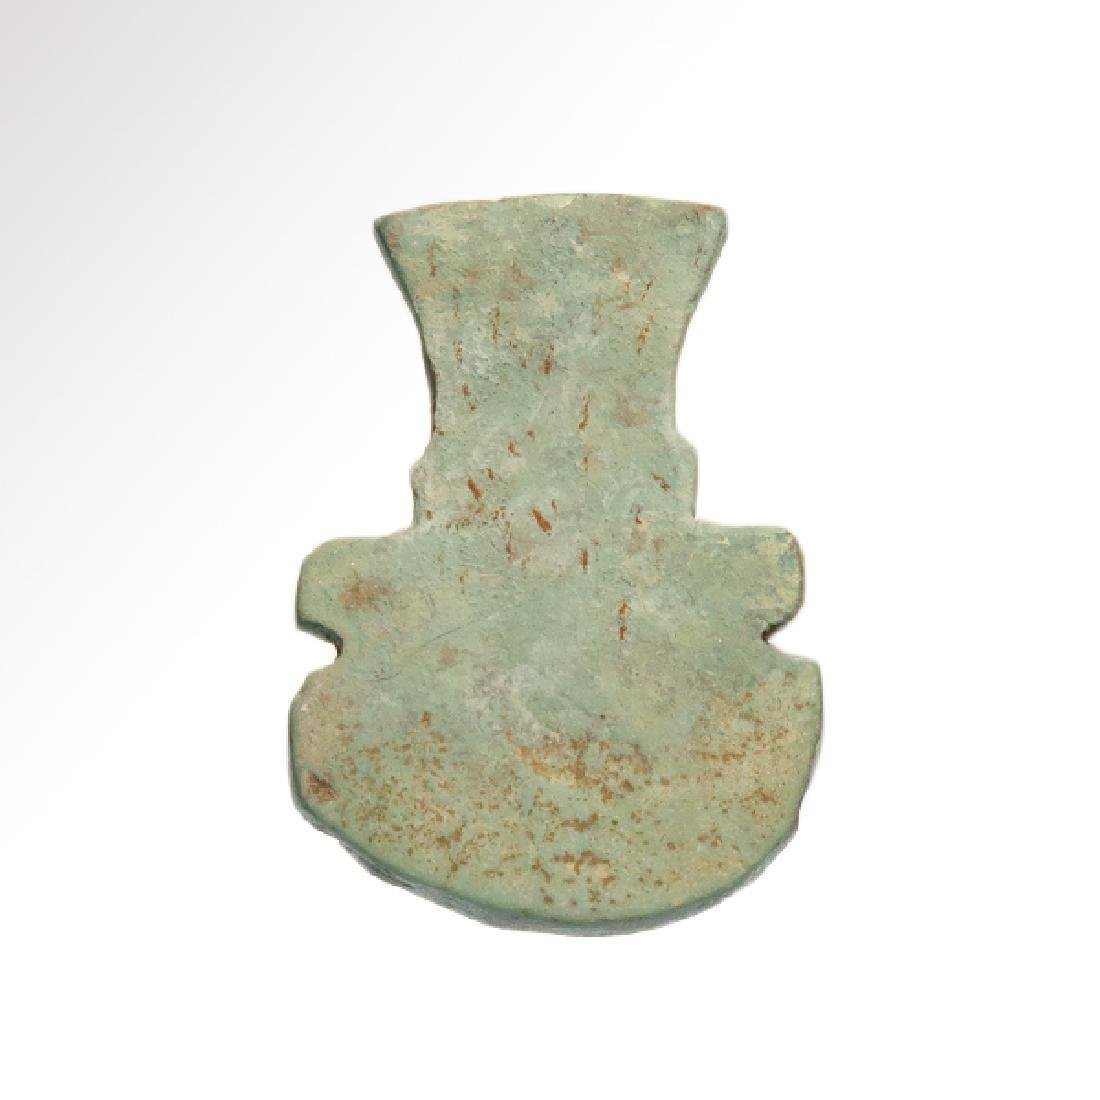 Egyptian Turquoise Faience Amulet of Bes, C. 600 BC - 2